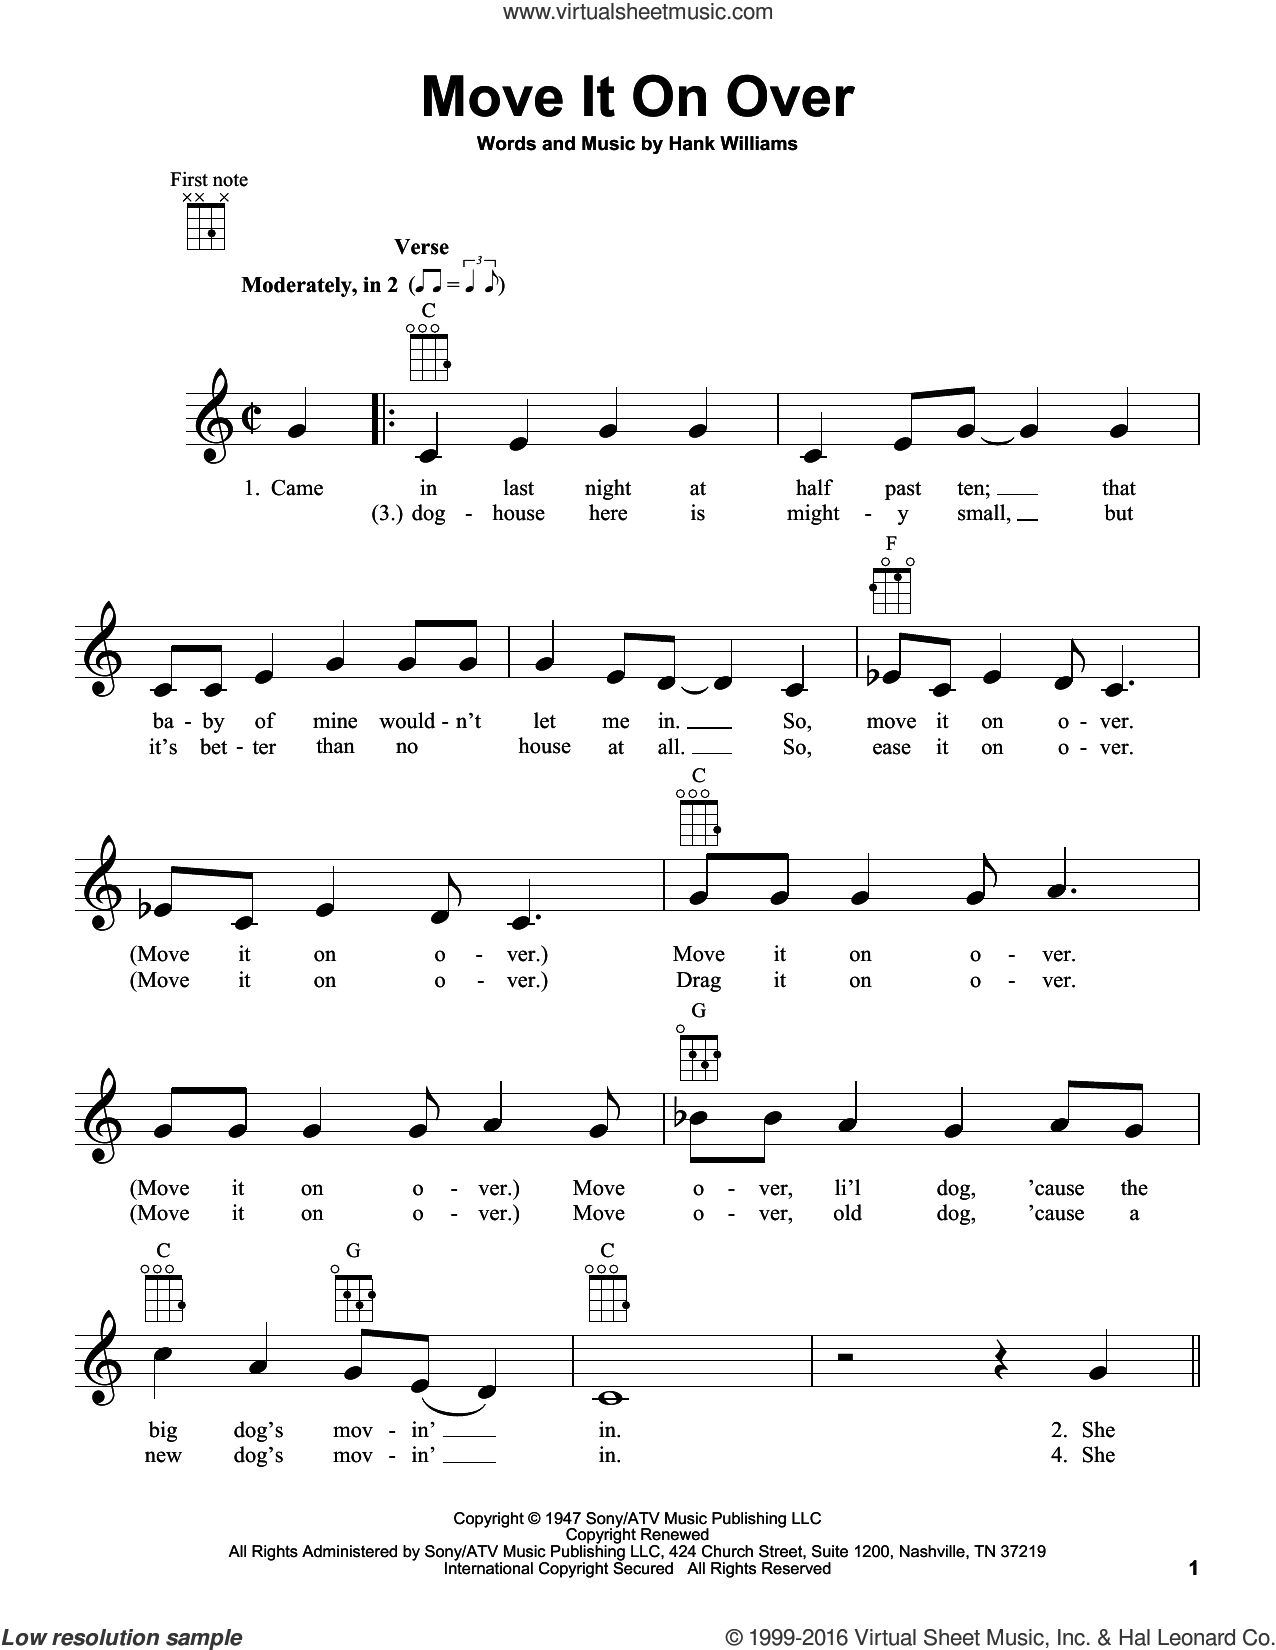 Move It On Over sheet music for ukulele by Hank Williams, Buddy Alan and Travis Tritt with George Thorogood, intermediate skill level